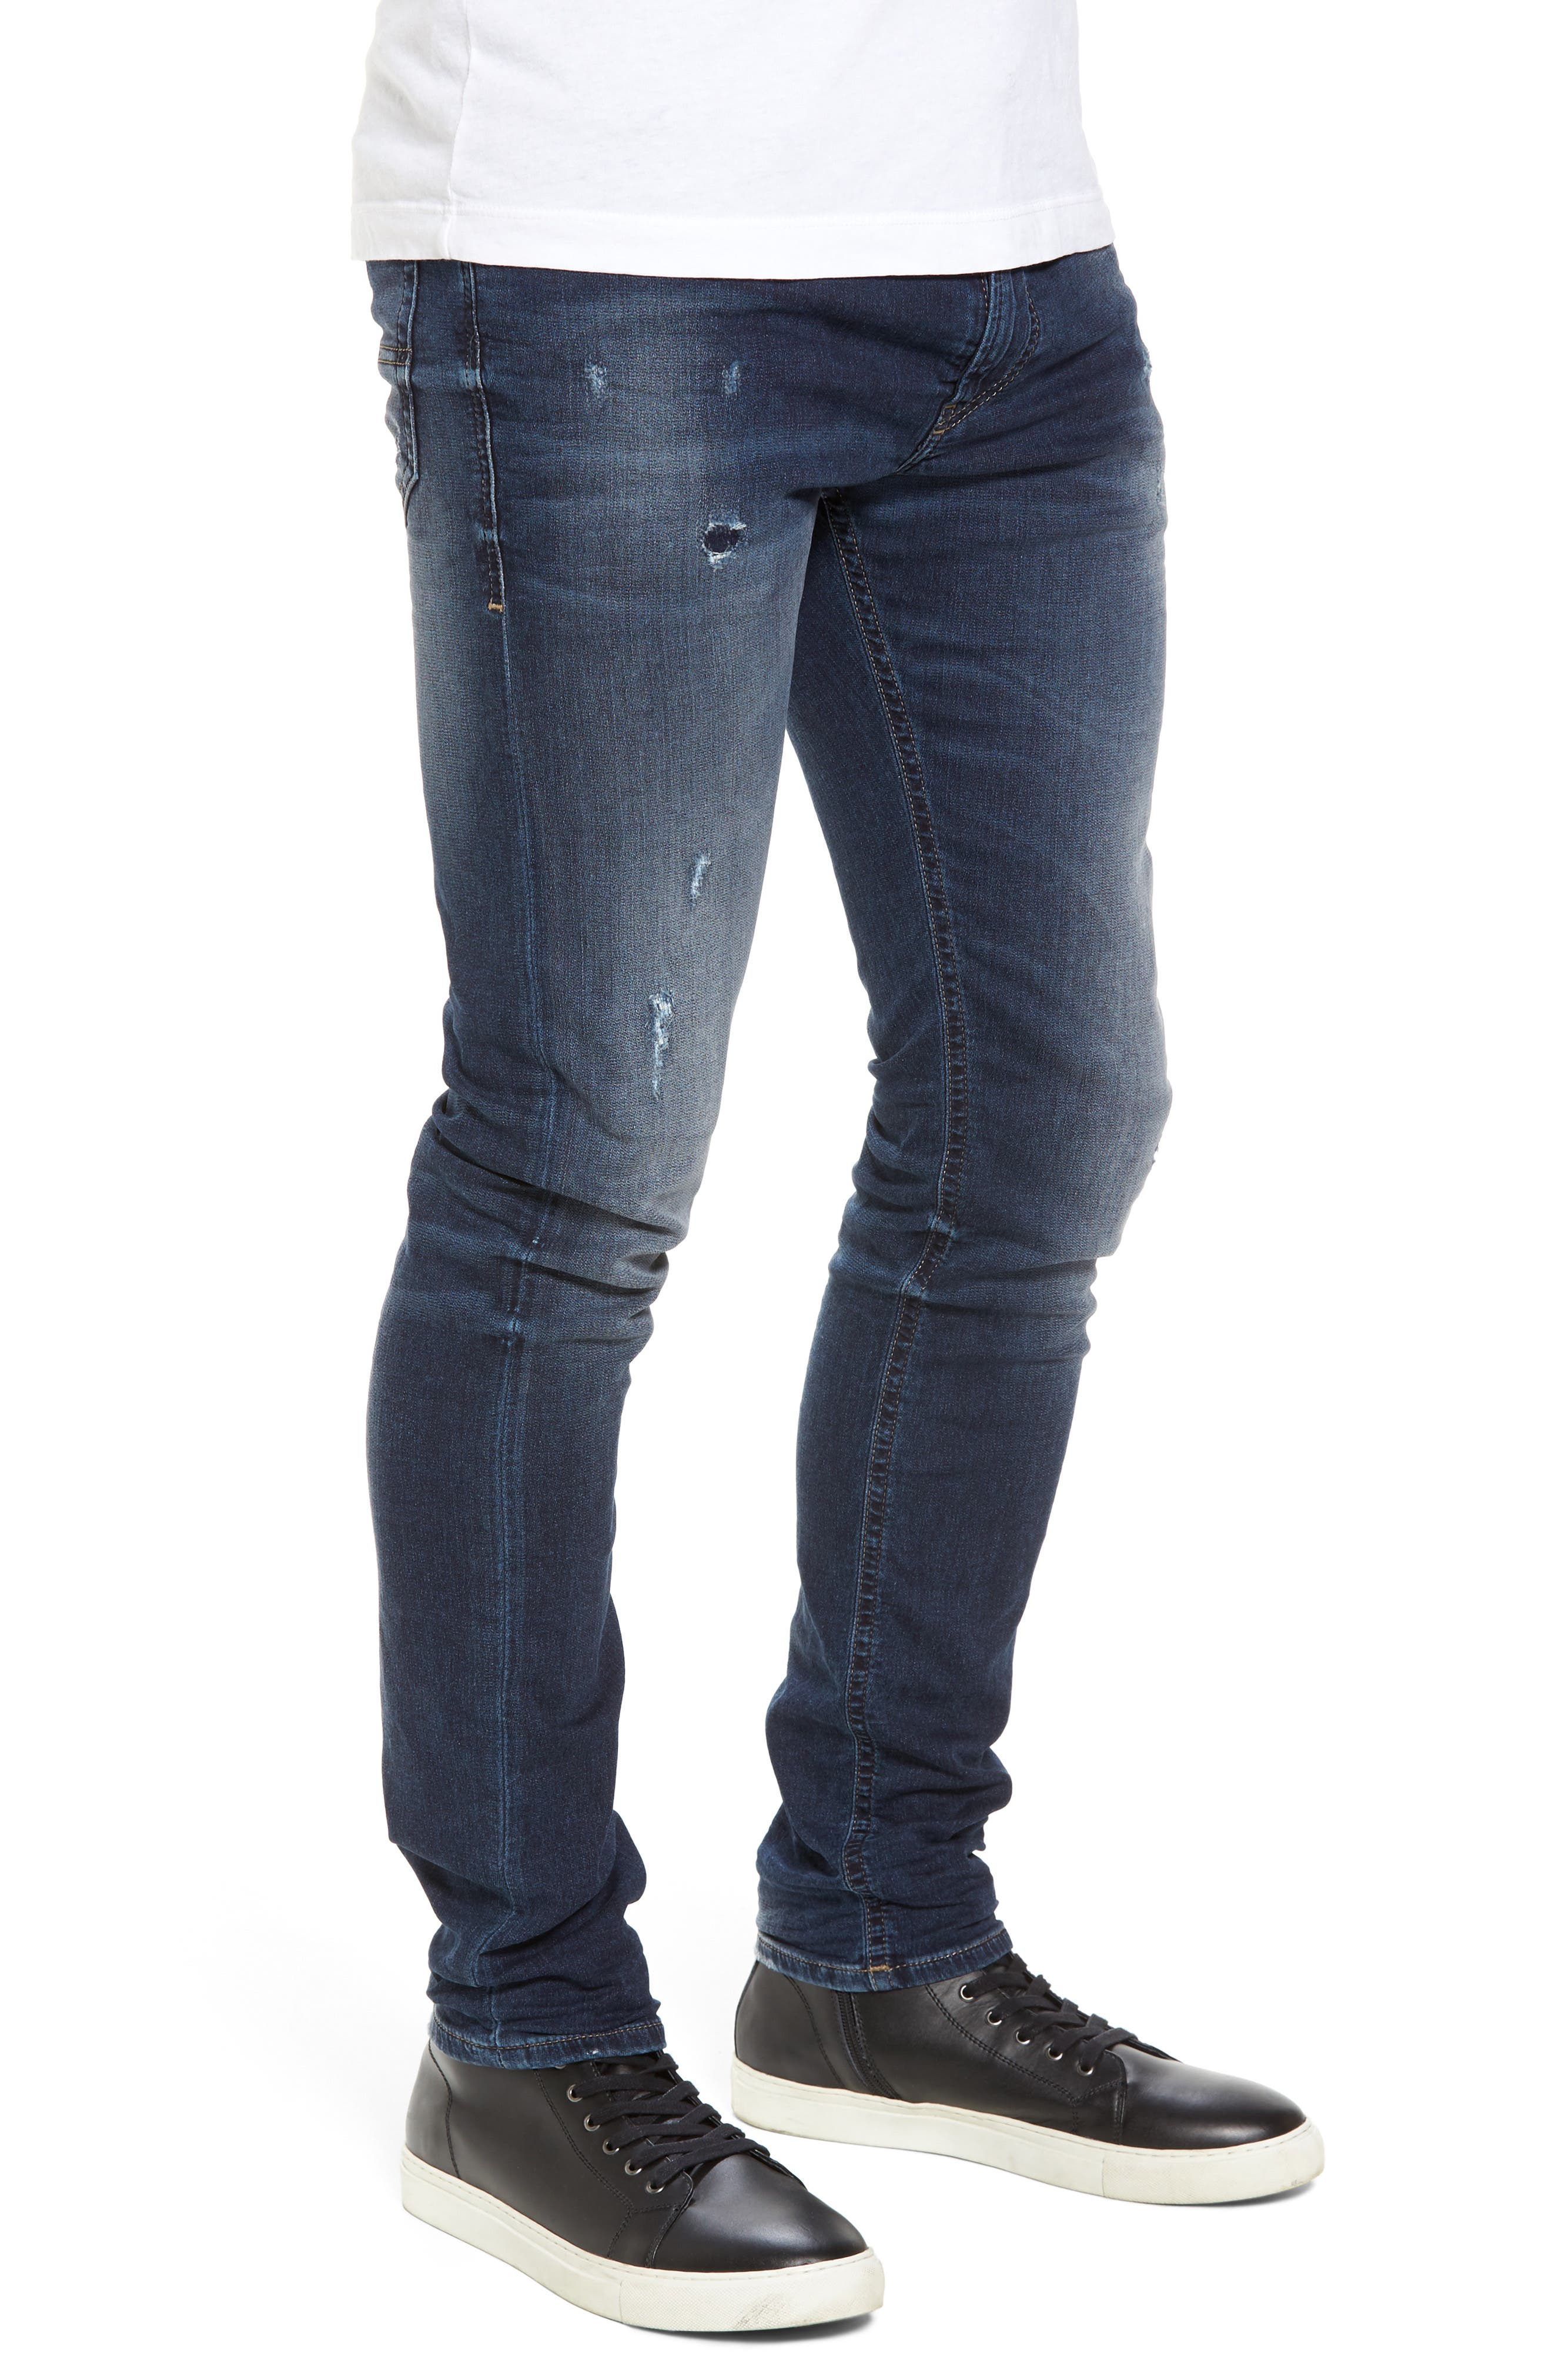 Thommer Slim Fit Jeans,                             Alternate thumbnail 3, color,                             0686W